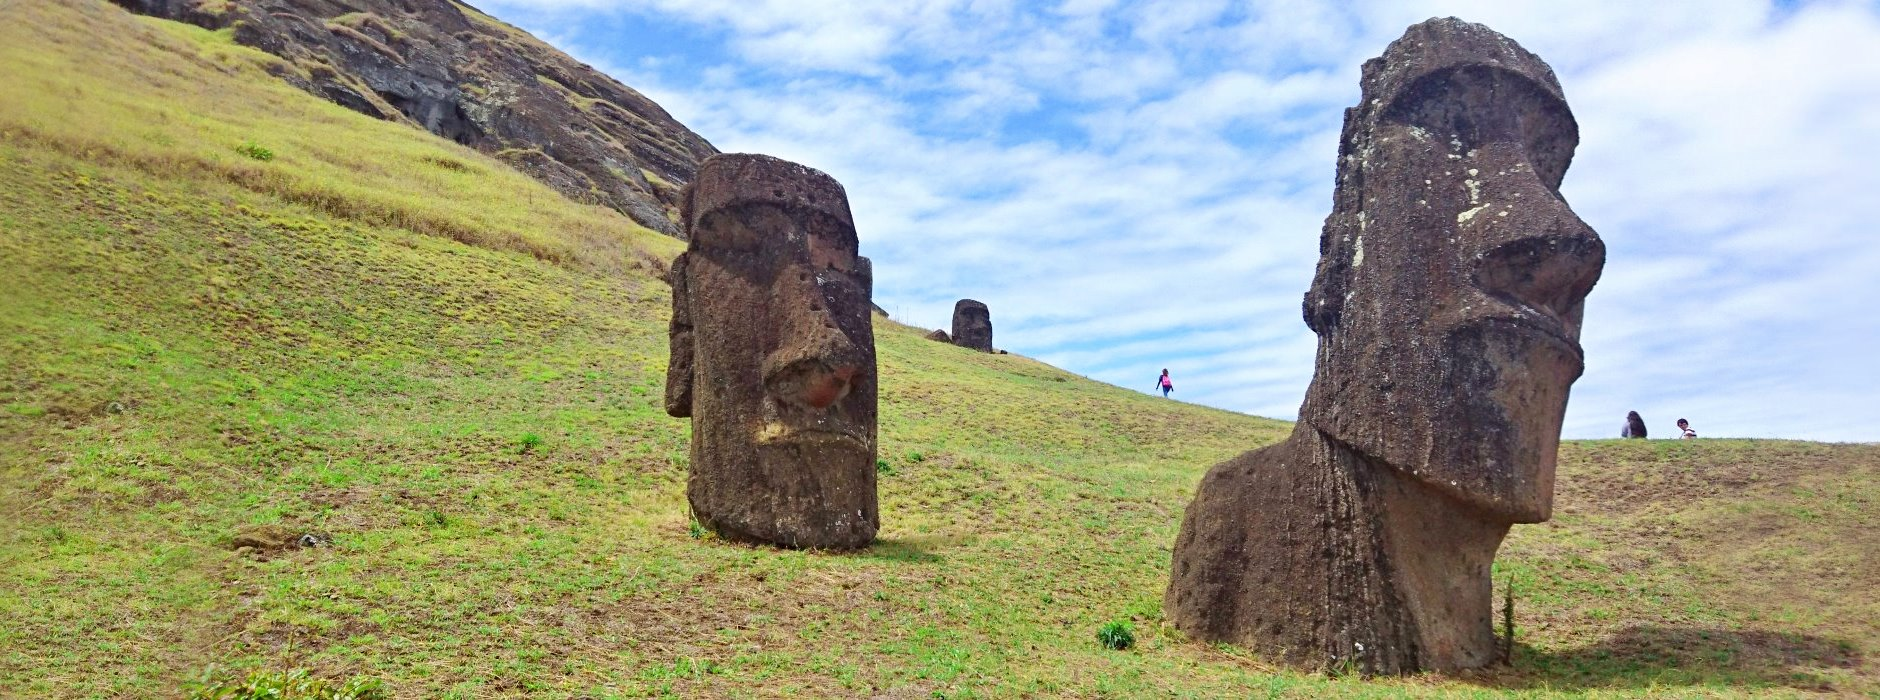 5 Facts about Rapa Nui (Easter Island)